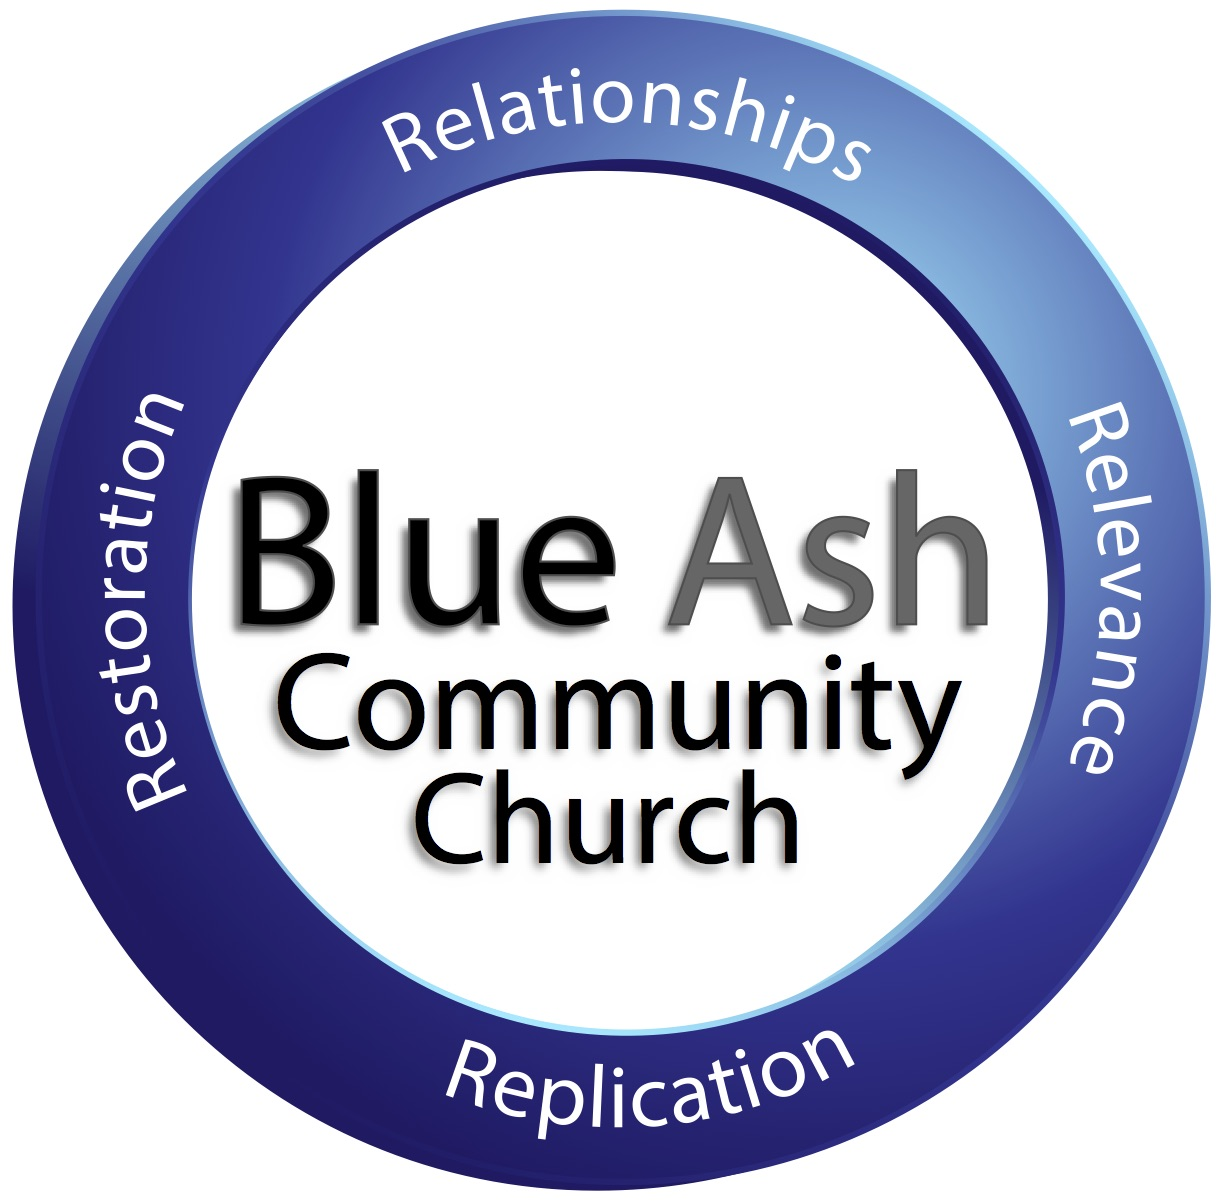 Blue Ash Community Church - GO • LOVE • LIVE